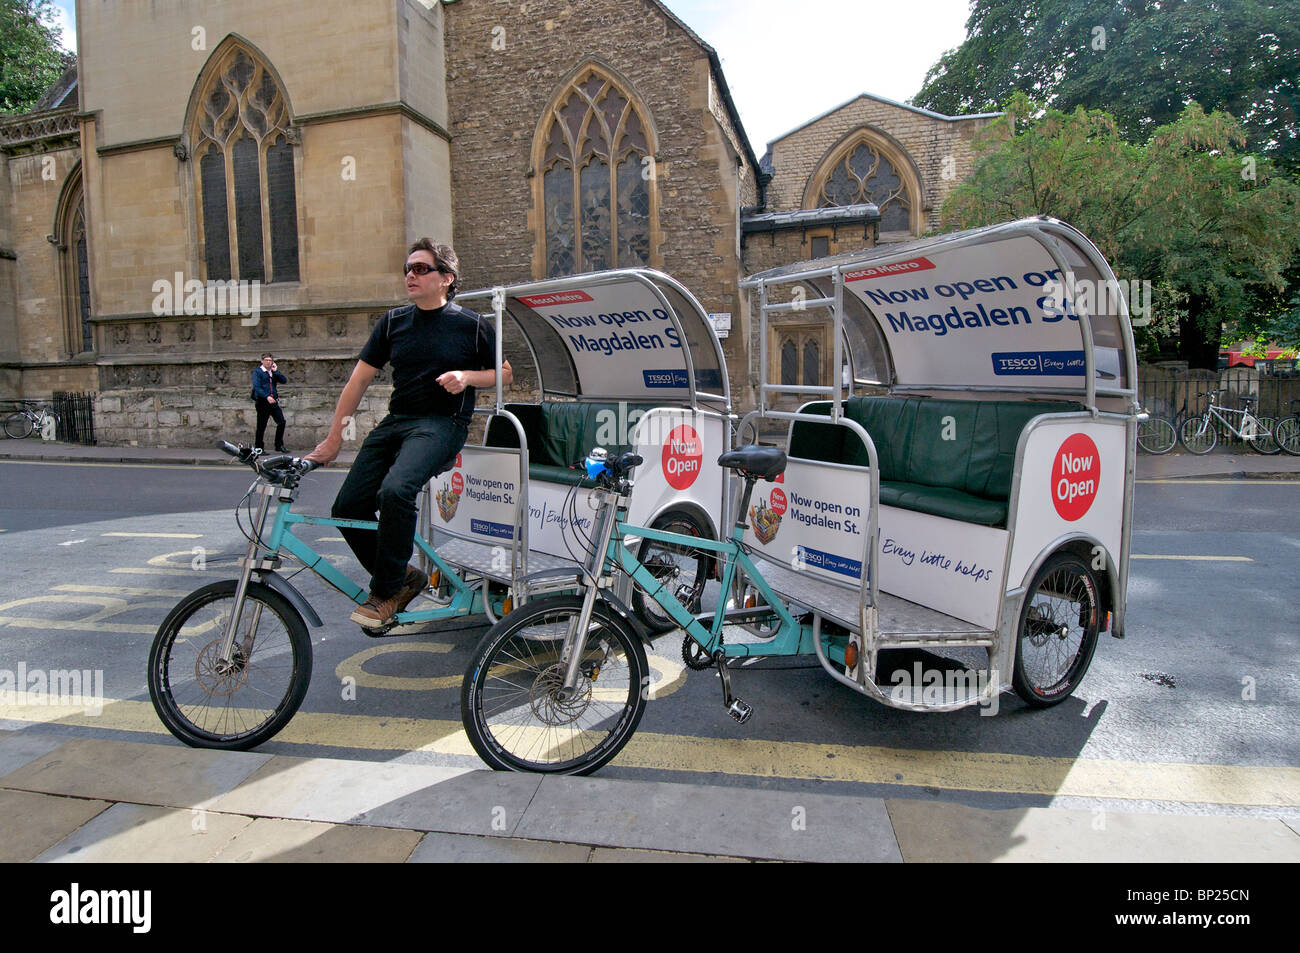 Oxford, England - Tricycle rickshaws covered in advertising slogans on the streets of the city - Stock Image